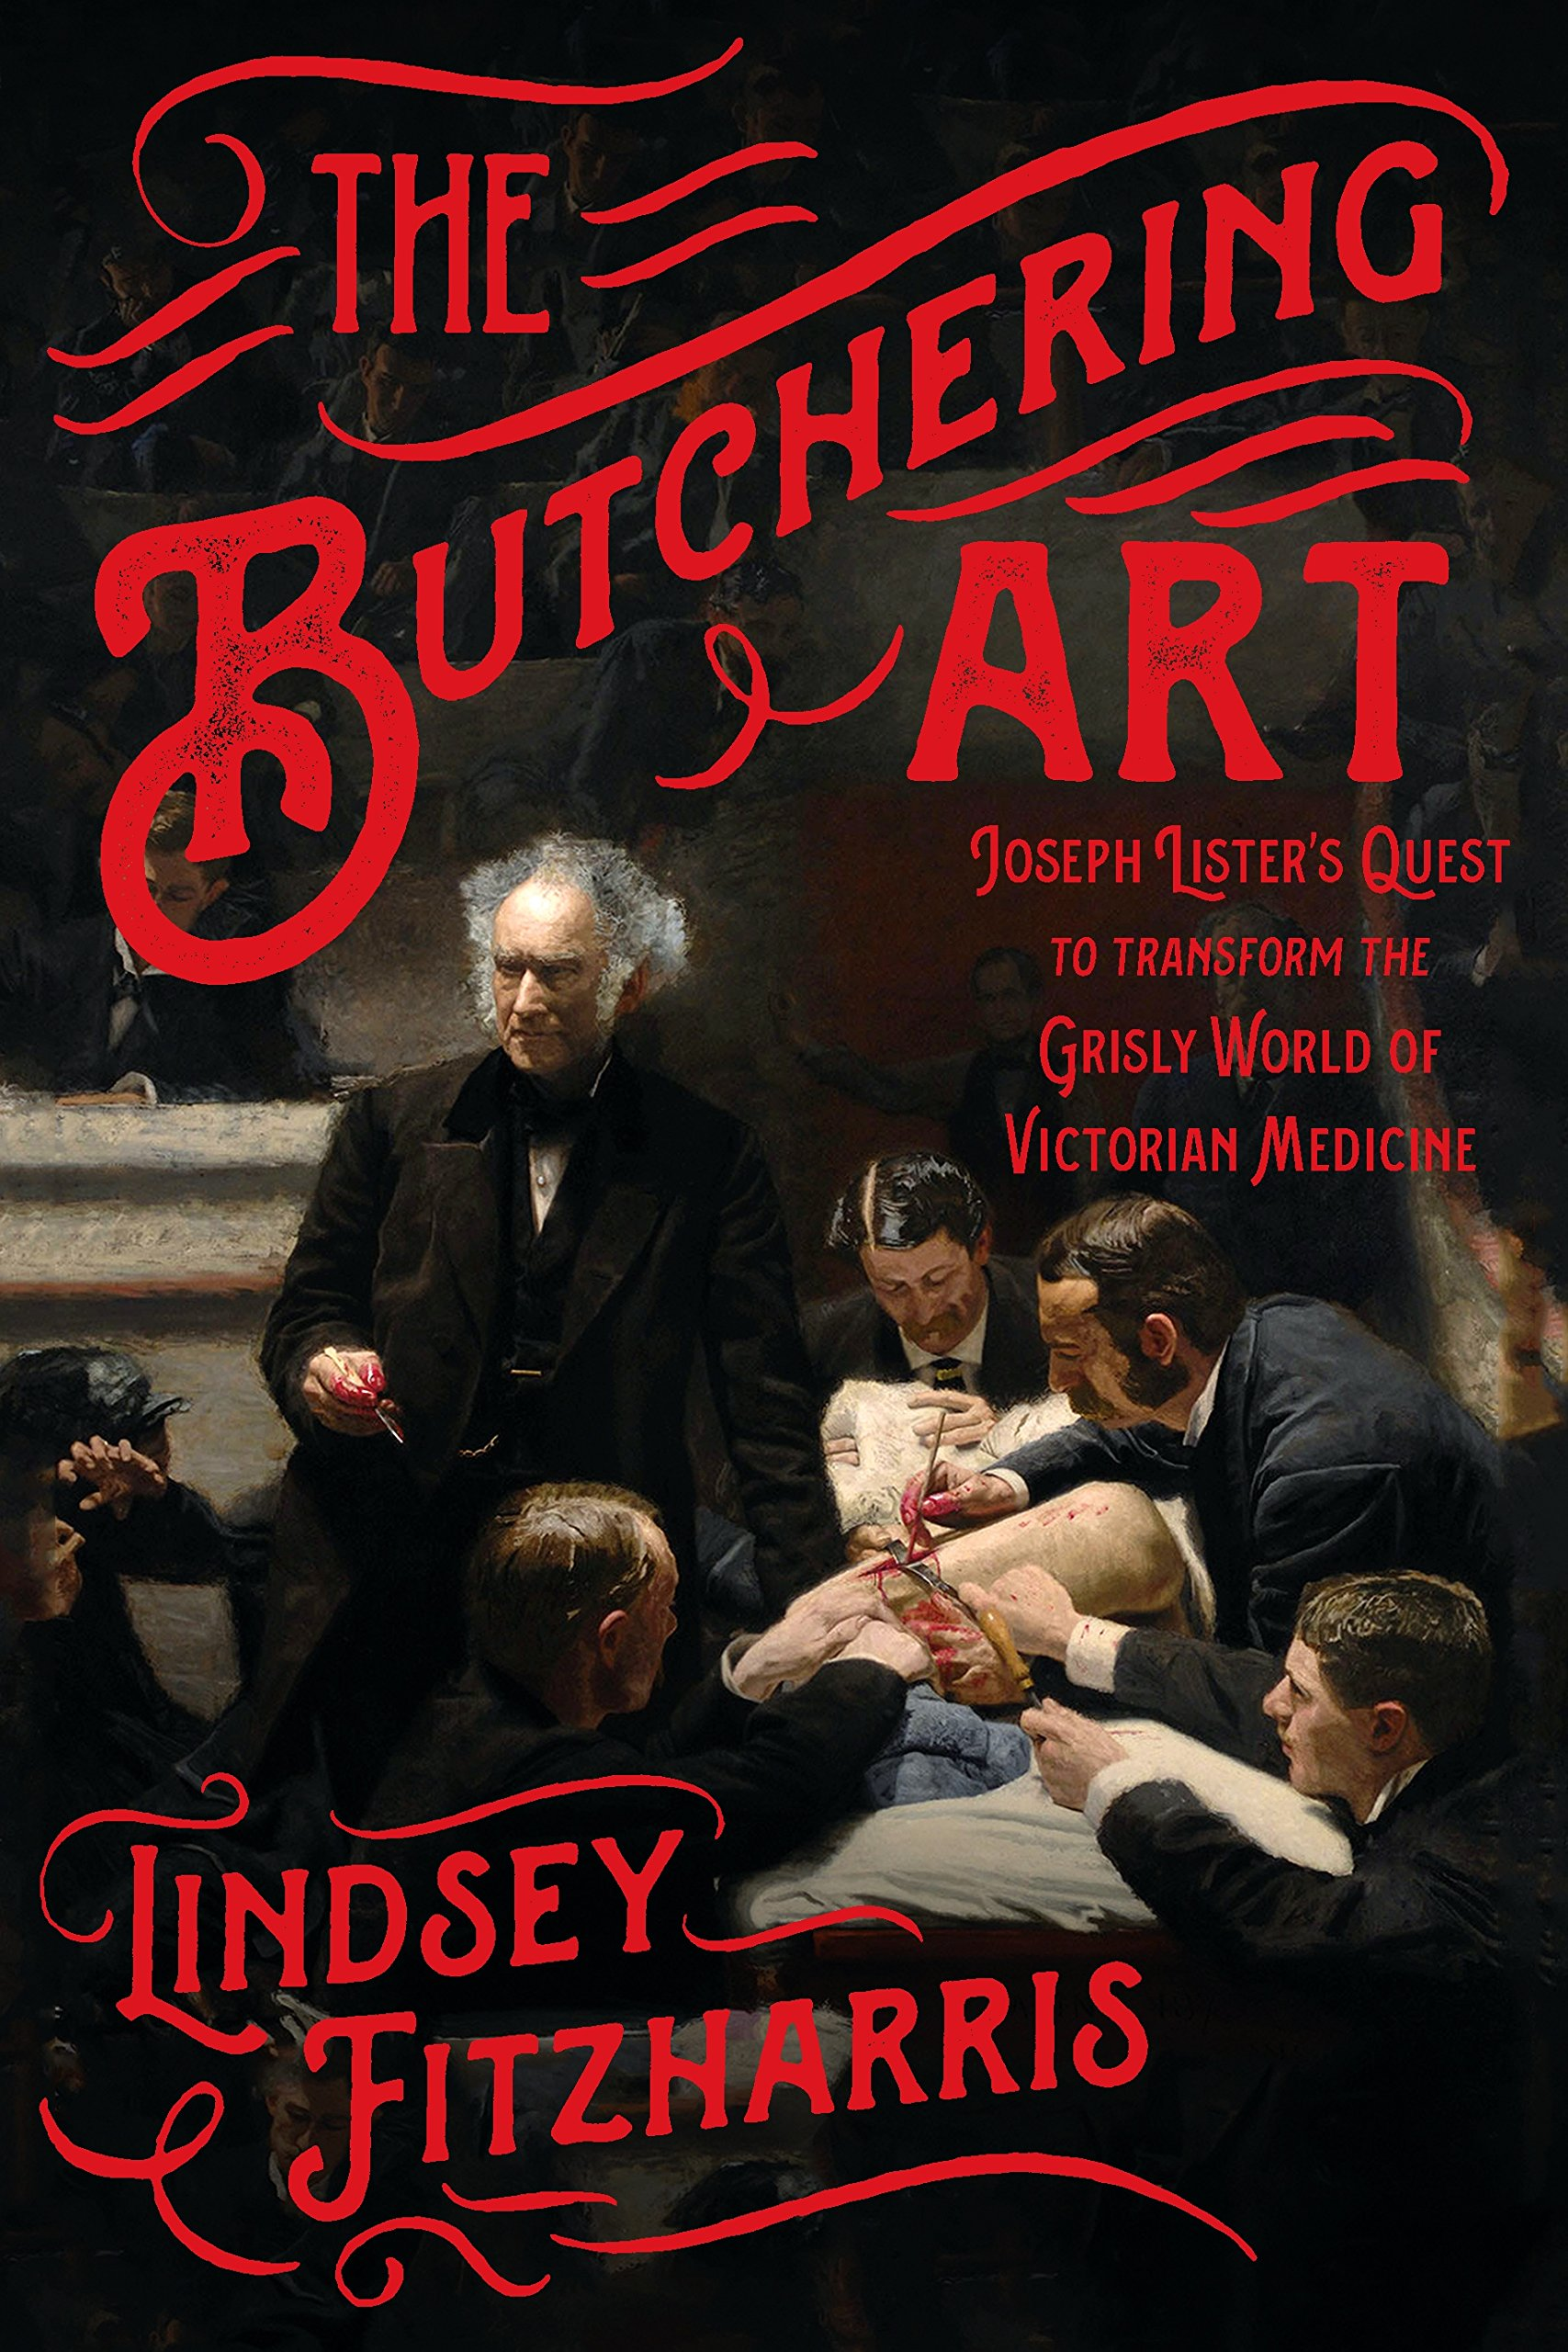 The Butchering Art book cover